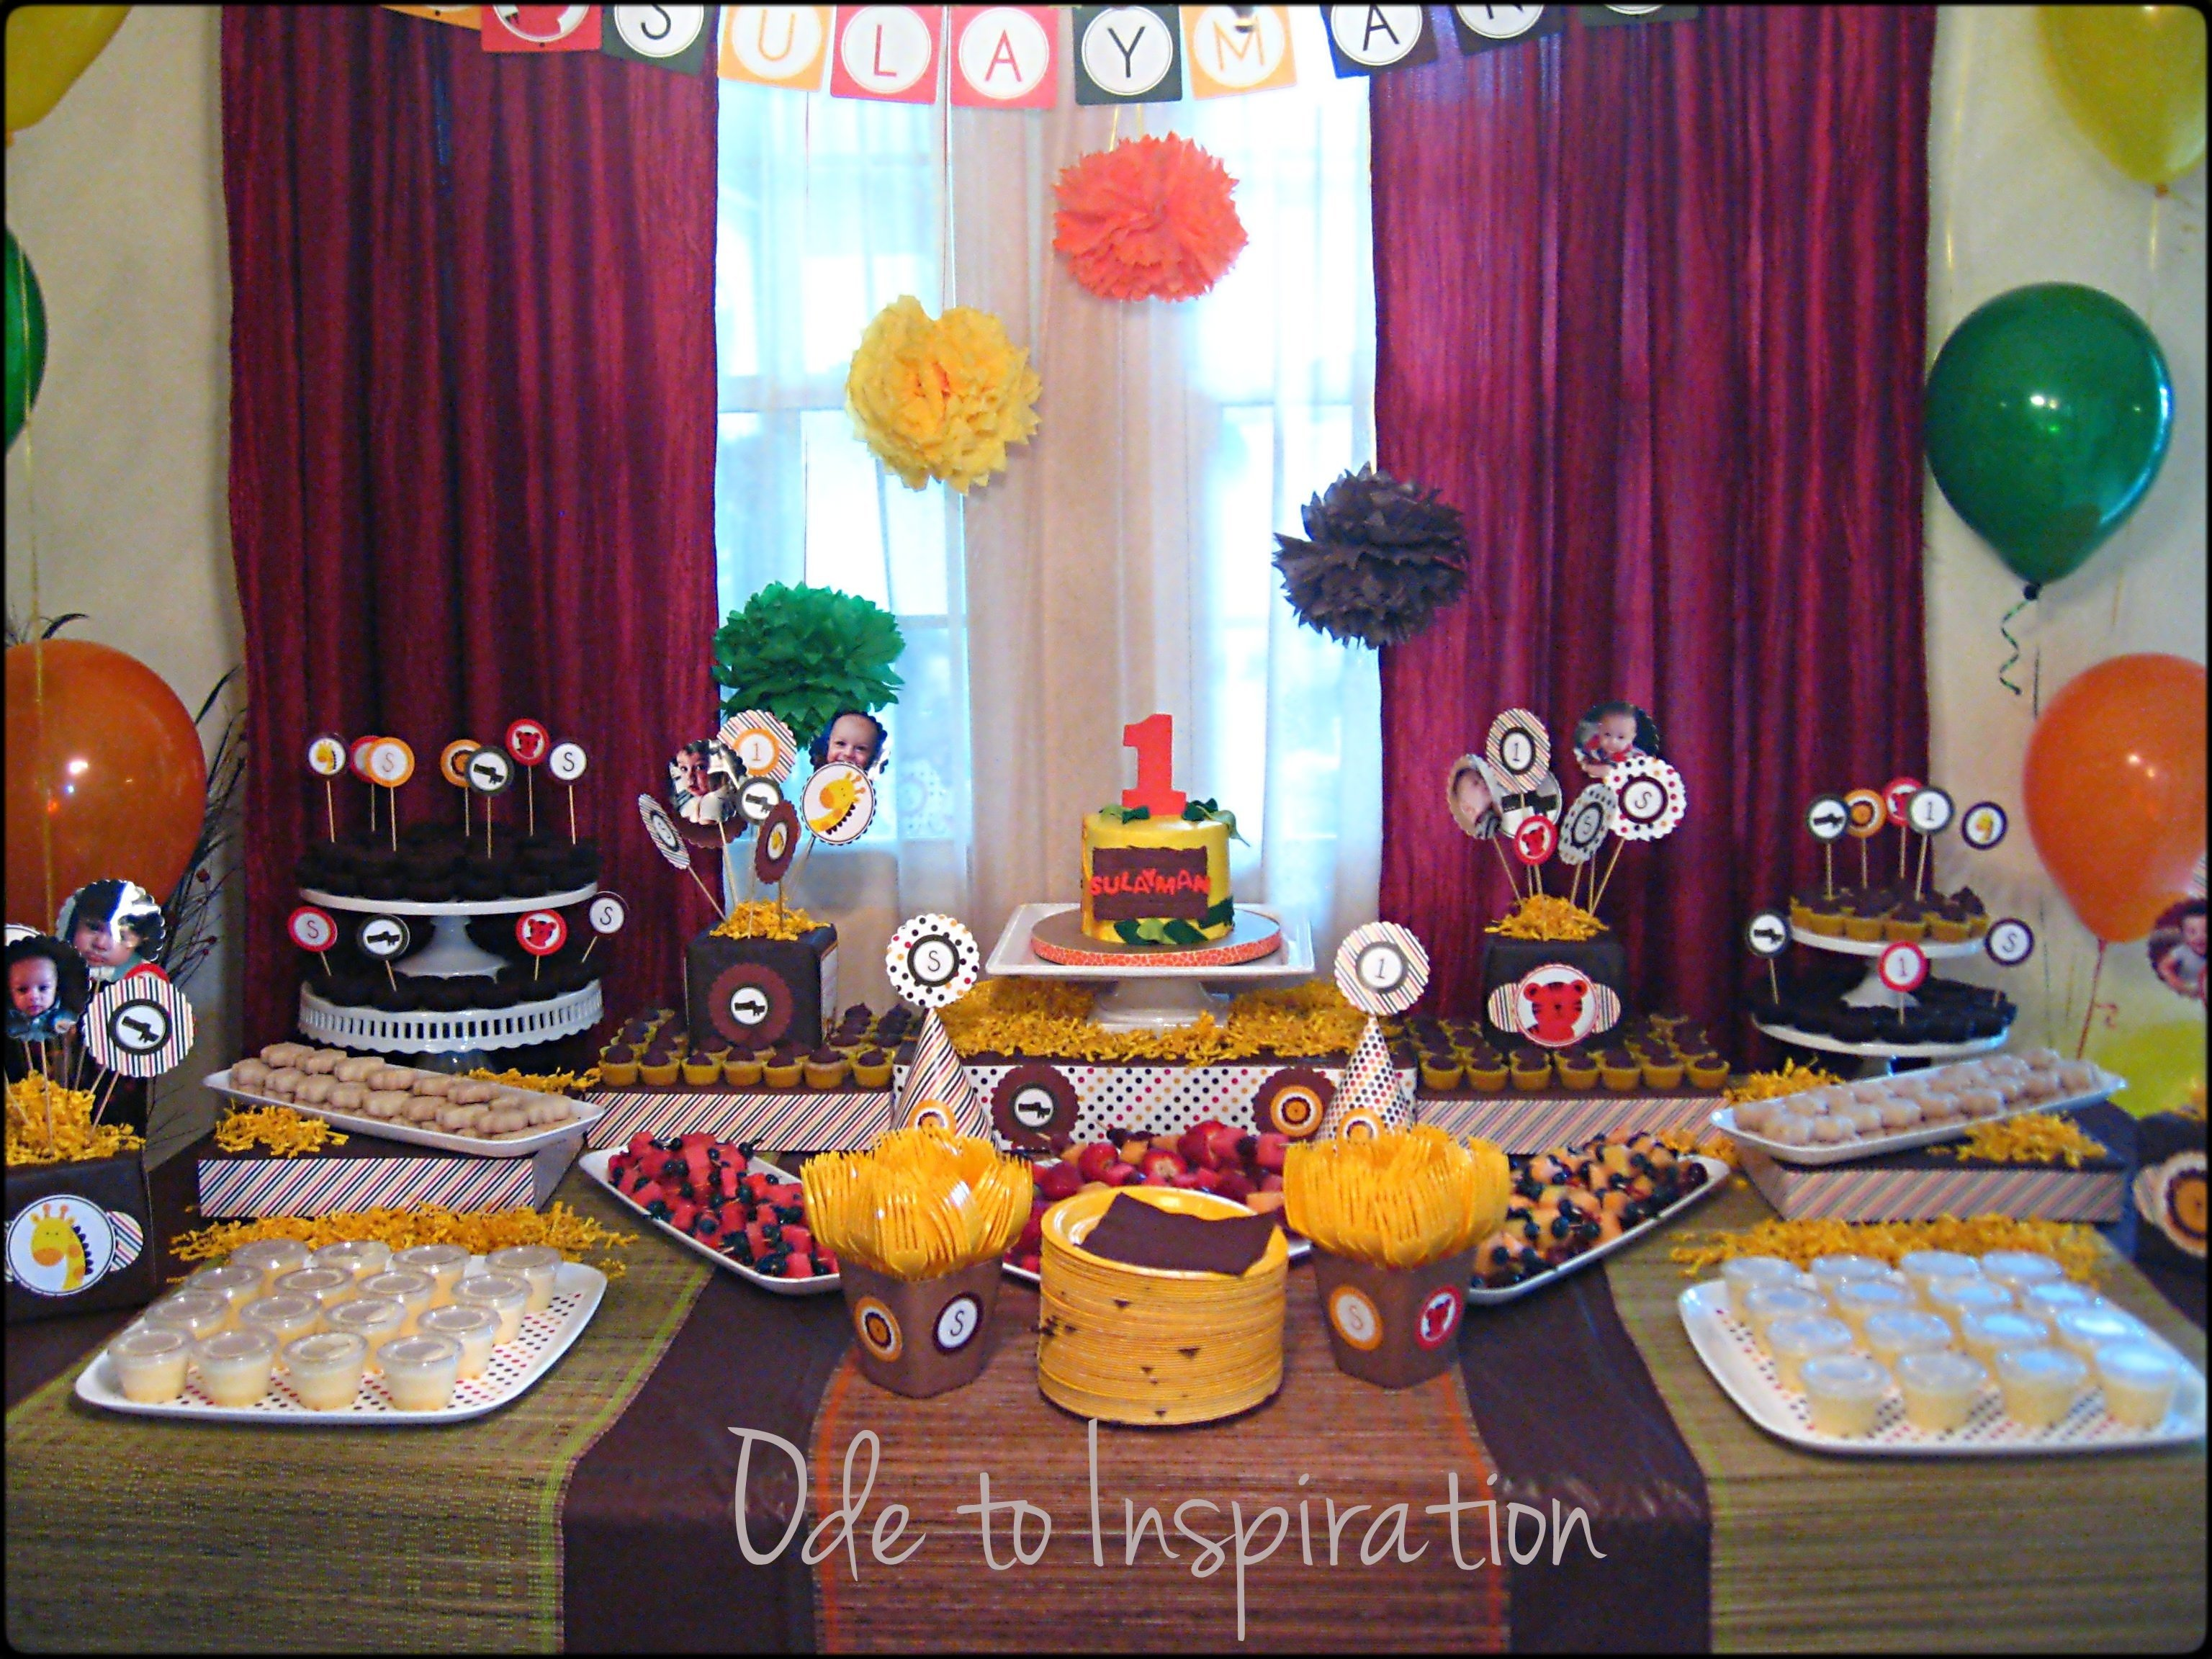 10 Unique Theme Party Ideas For Adults birthday house party ideas for adults 9 2021